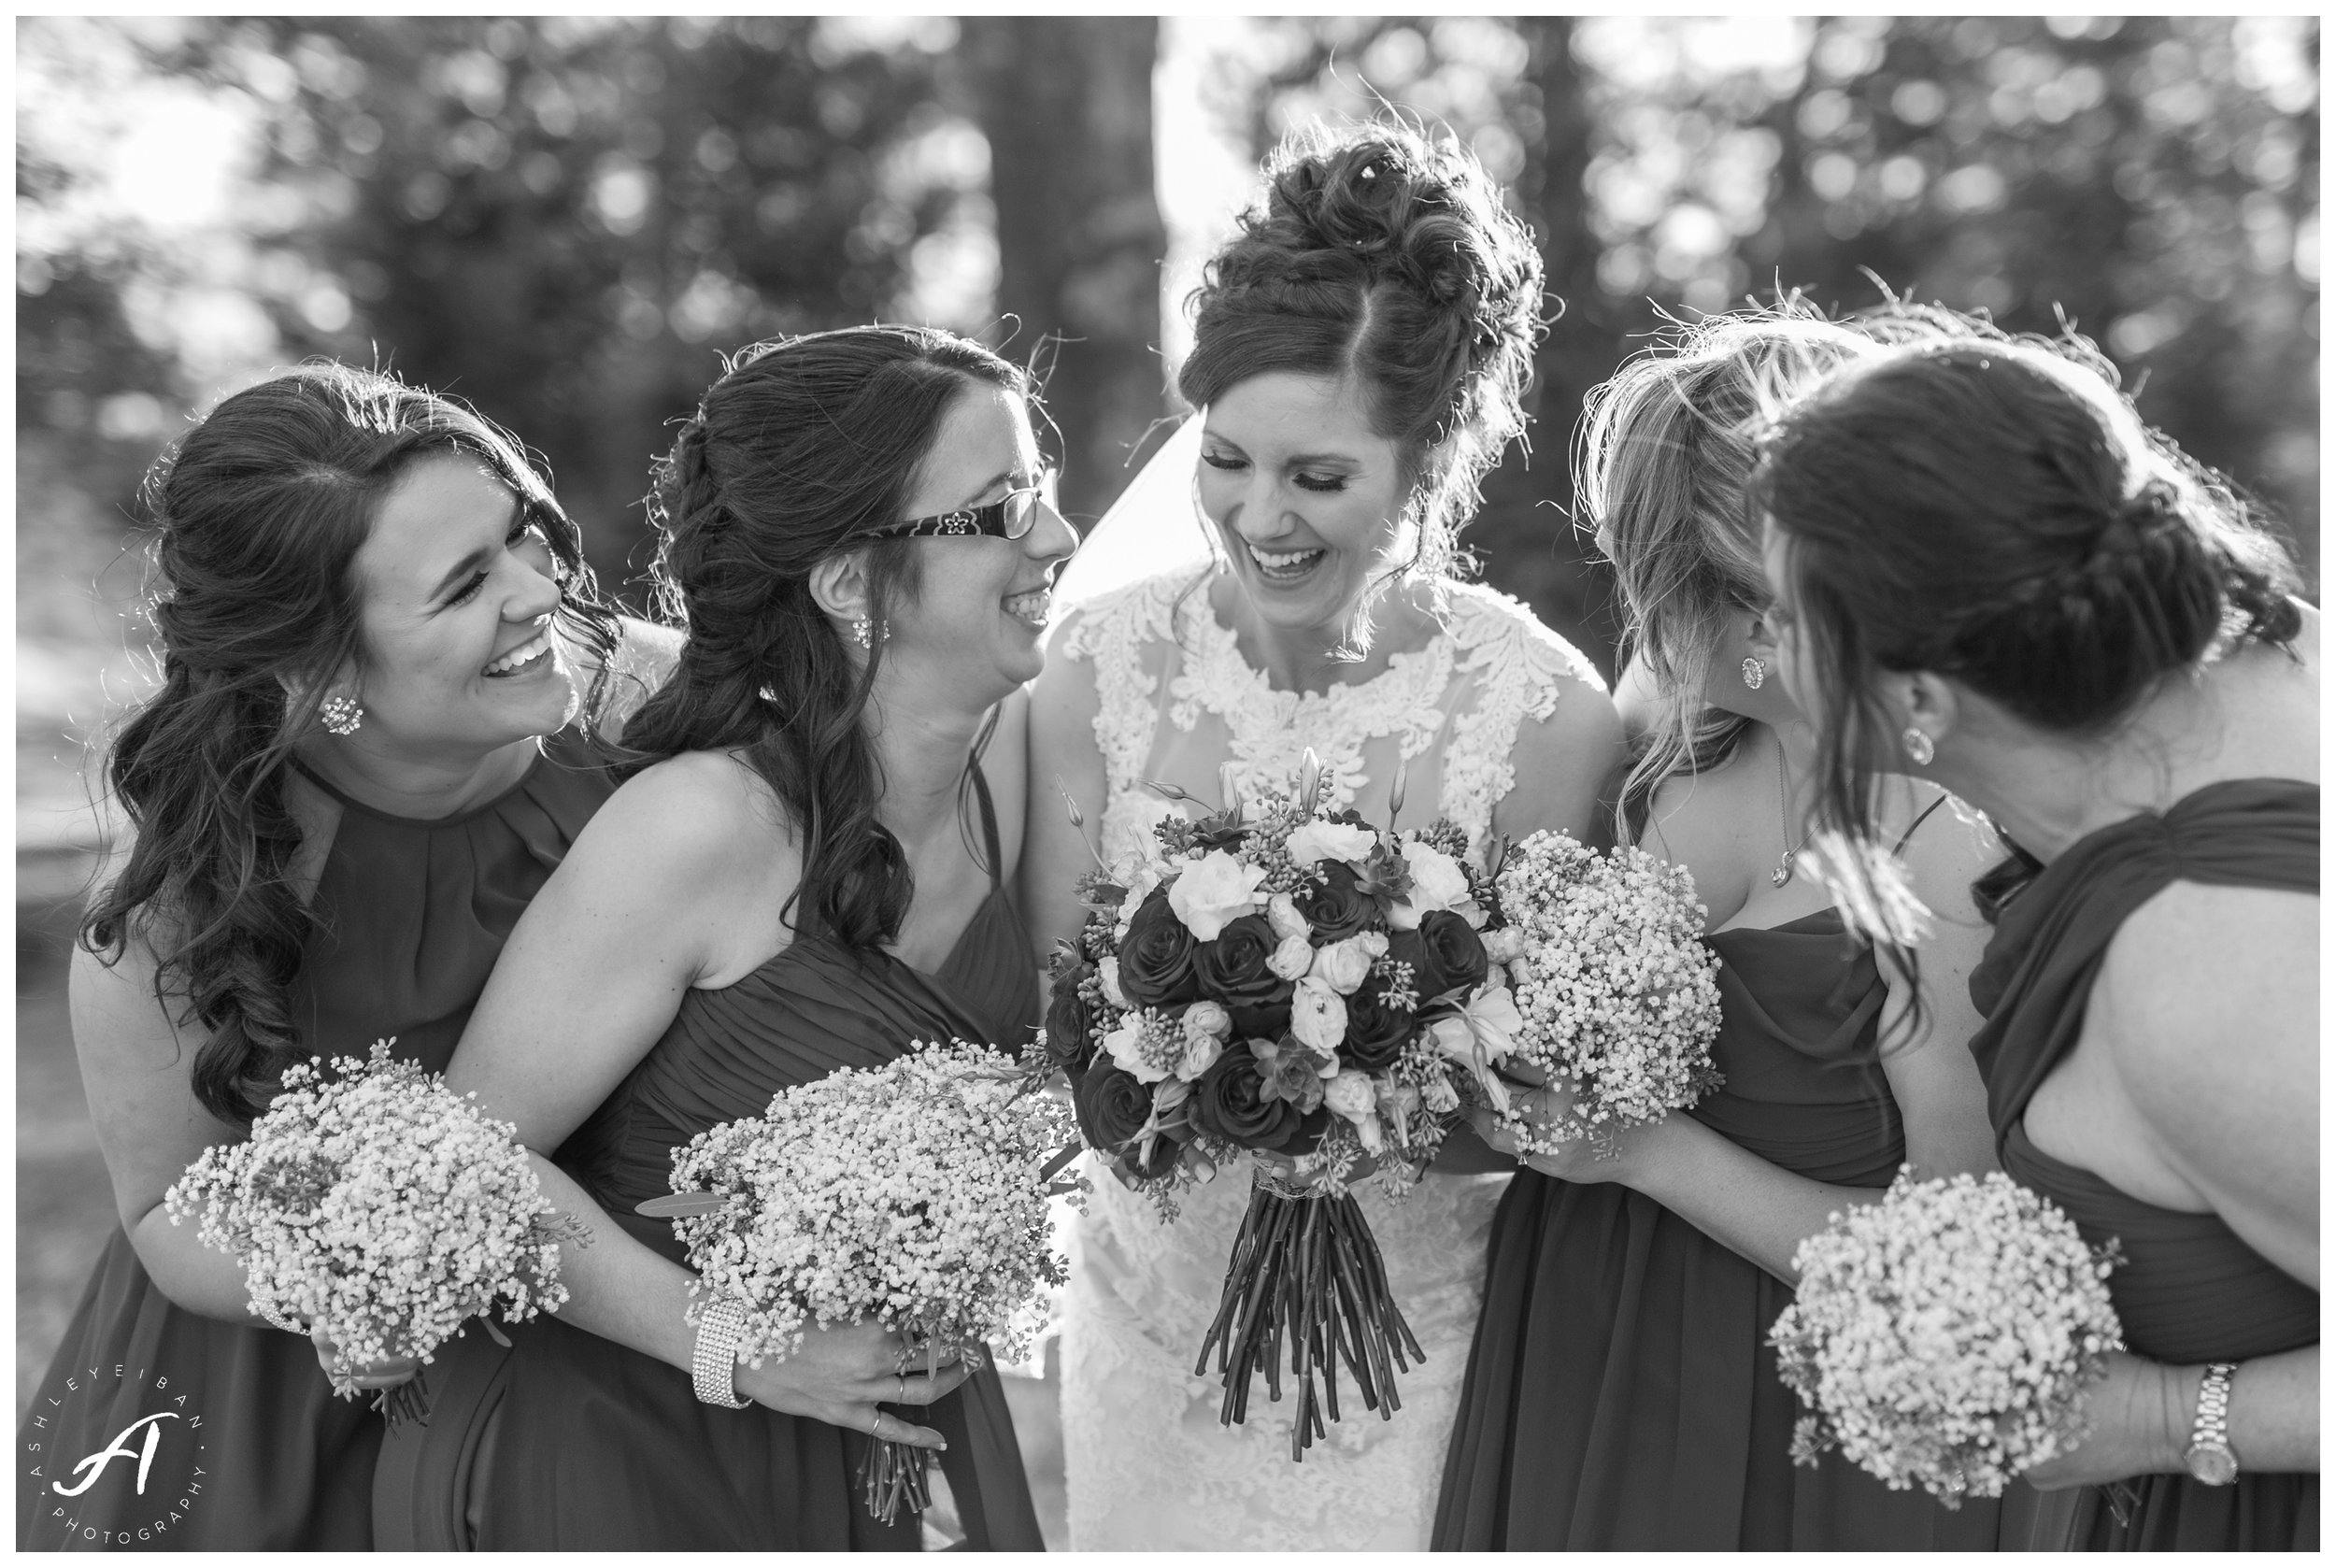 Central Virginia Wedding at The Trivium Estate || Forest and Lynchburg Wedding Photographer || Ashley Eiban Photography || www.ashleyeiban.com